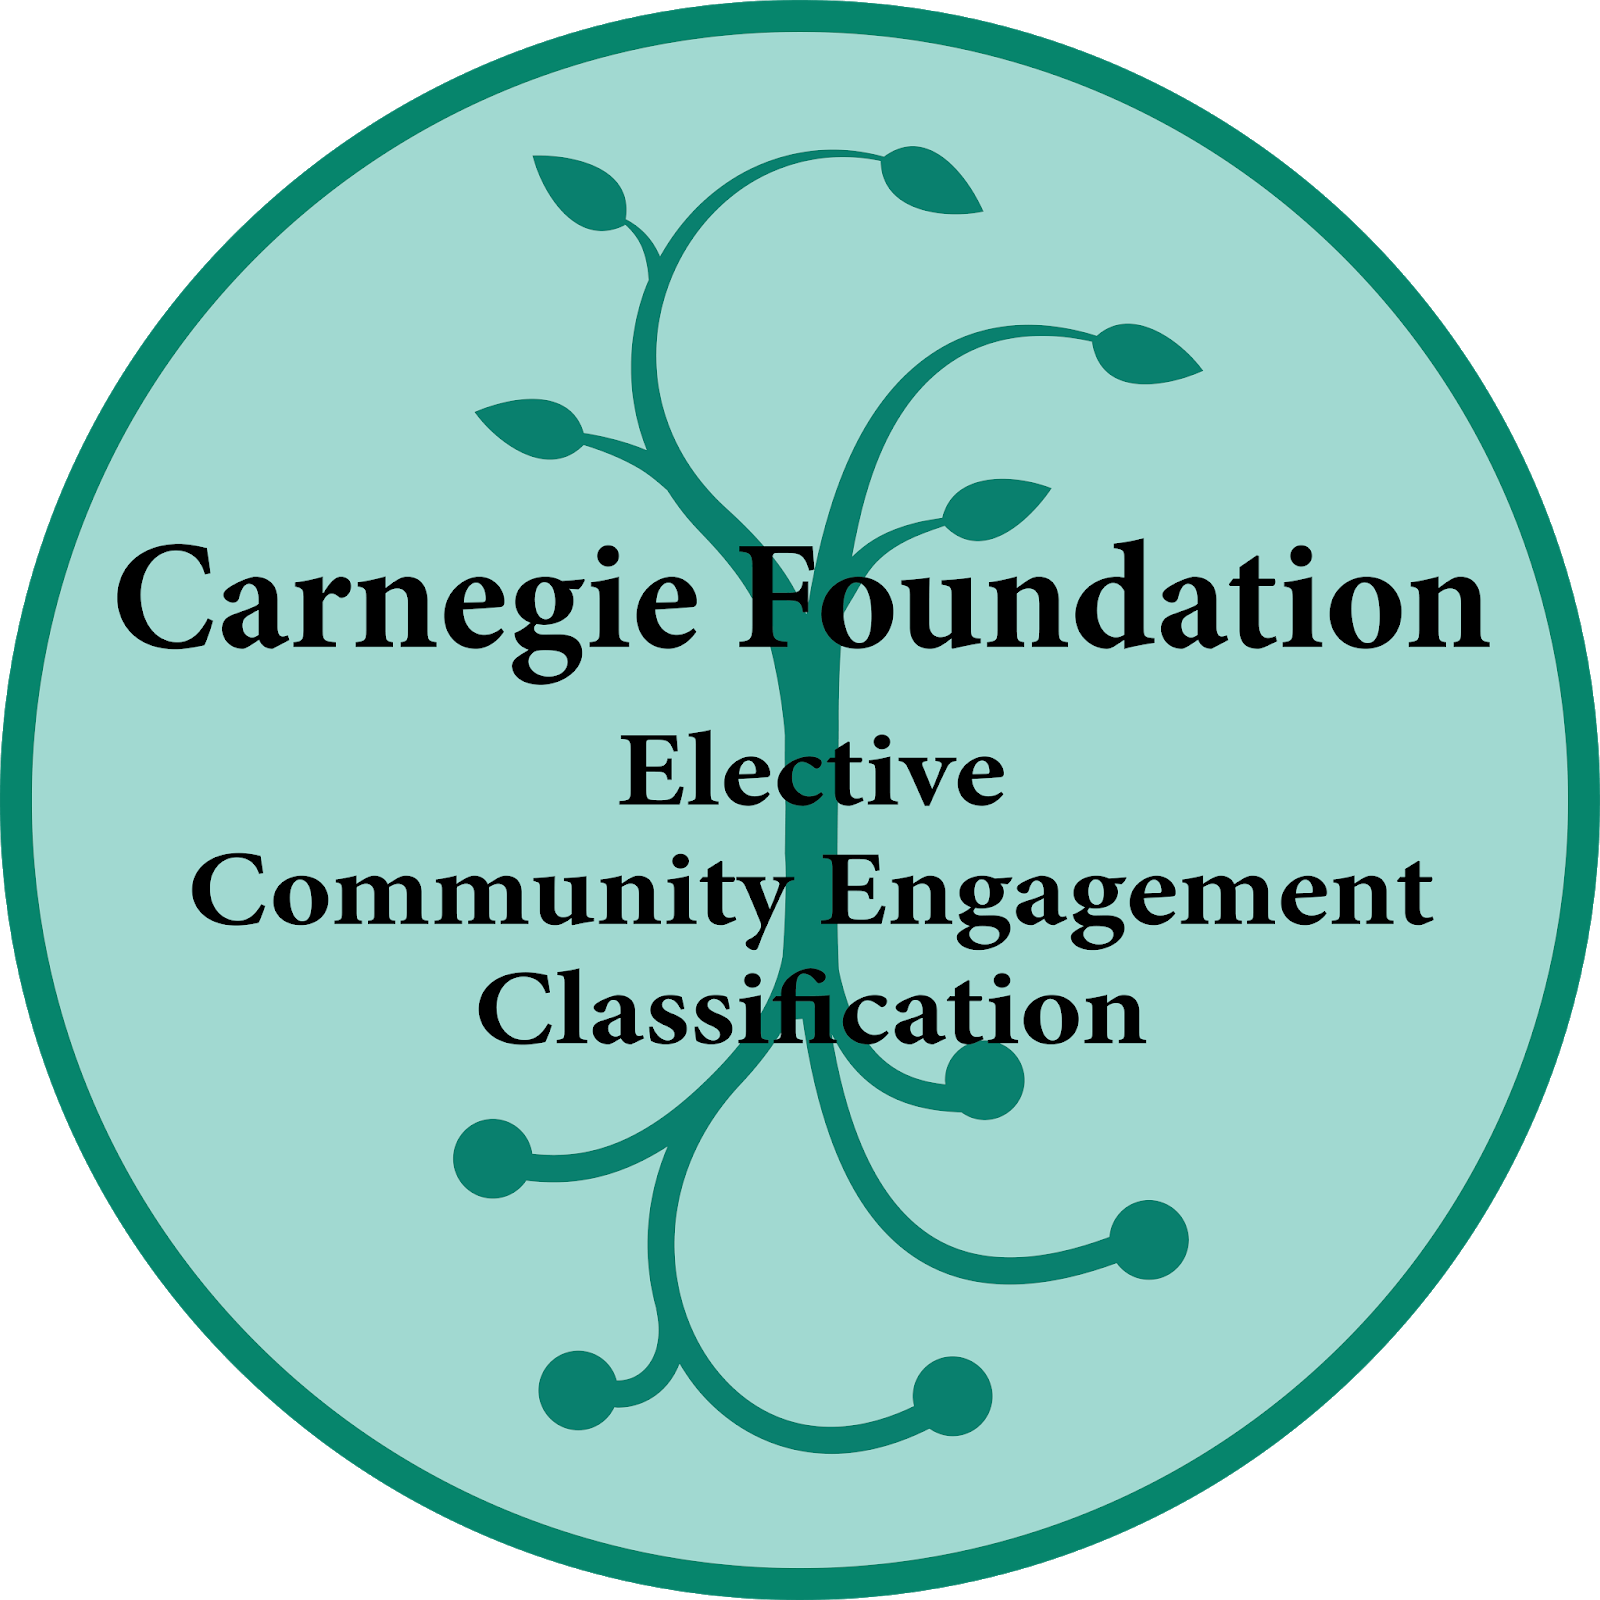 Carnegie Foundation Selects Colleges And Universities For Intended For Spokane Community Colleges Academic Calendar